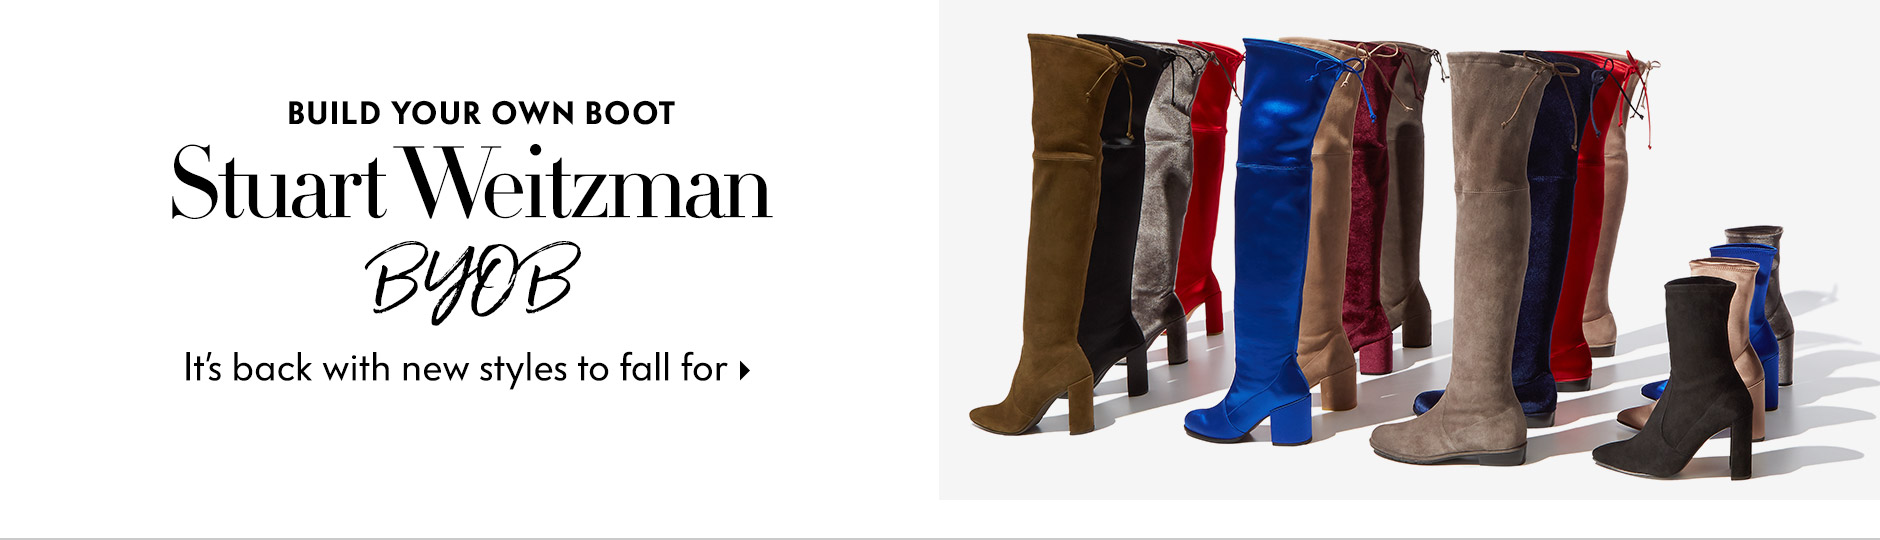 Stuart Weitzman: Build Your Own Boot Lookbook